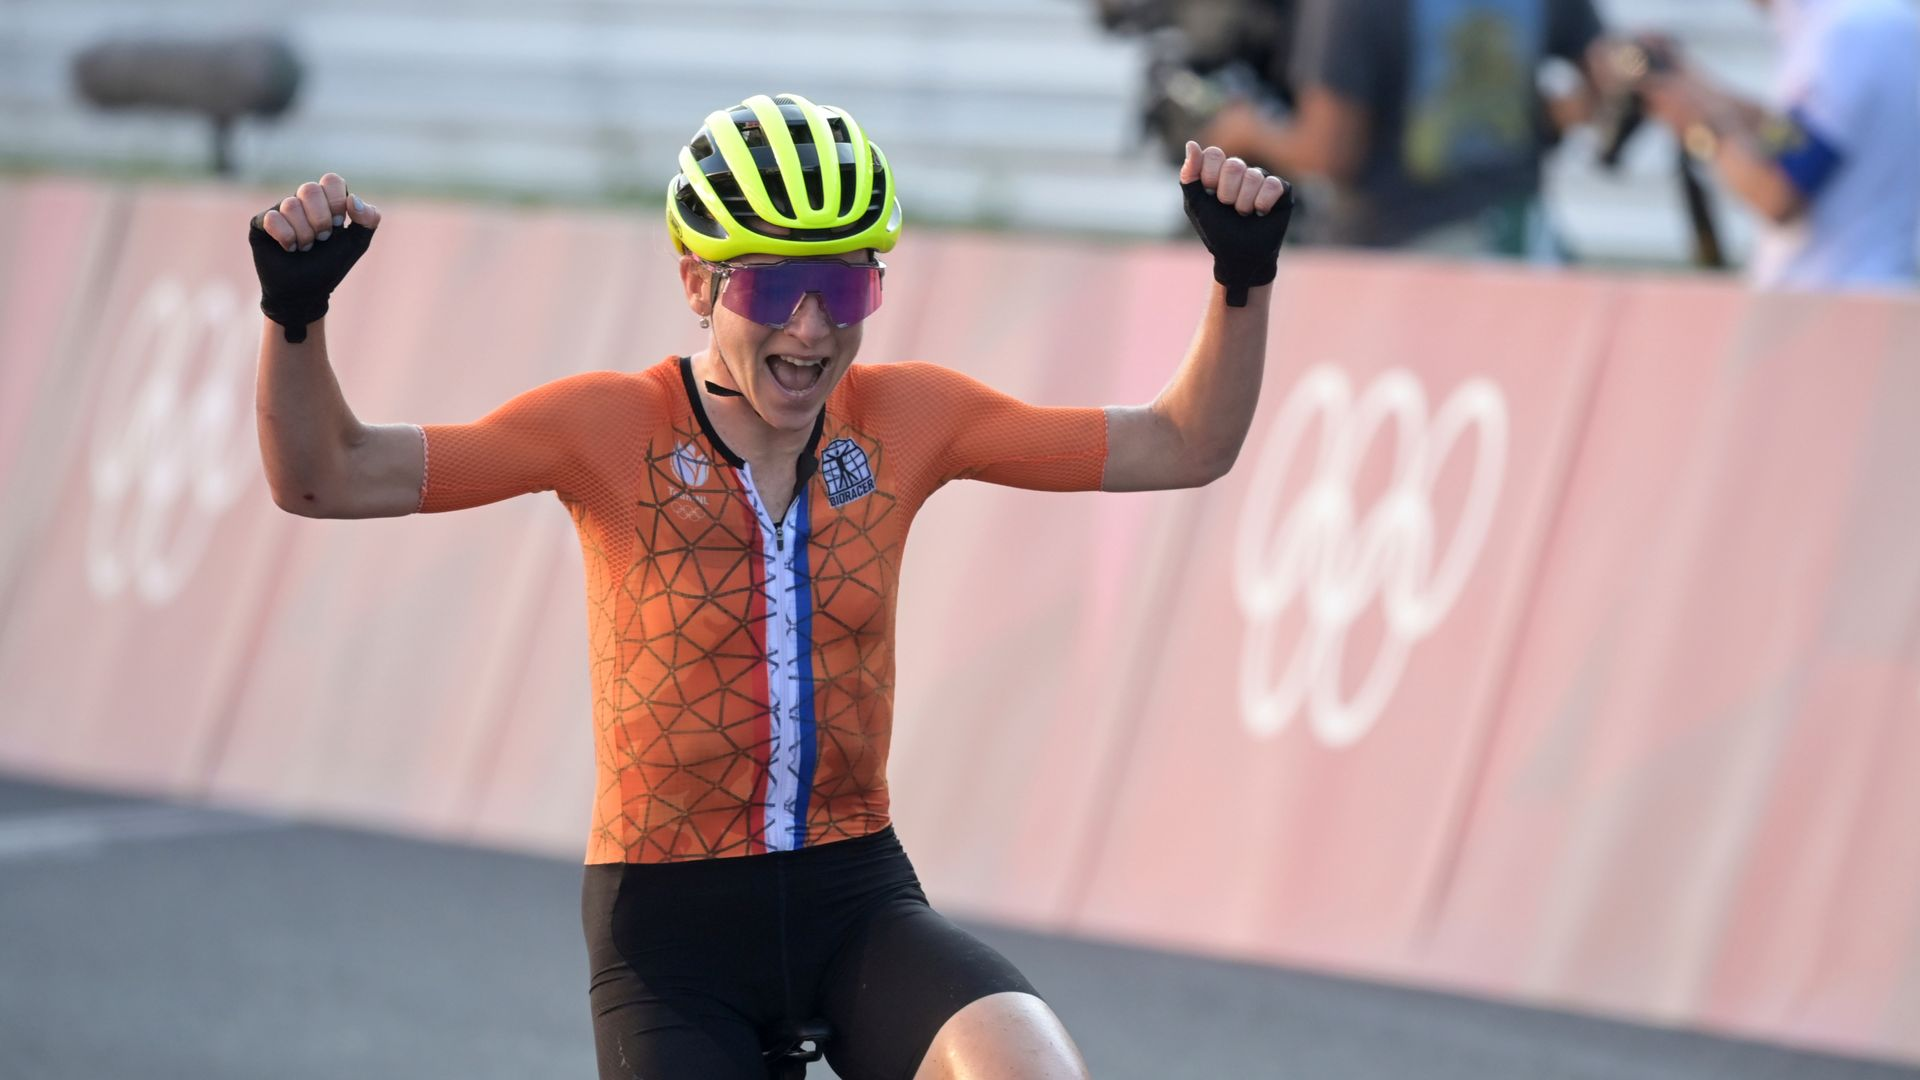 Confusion in Tokyo as Dutch cyclist mistakes silver for gold